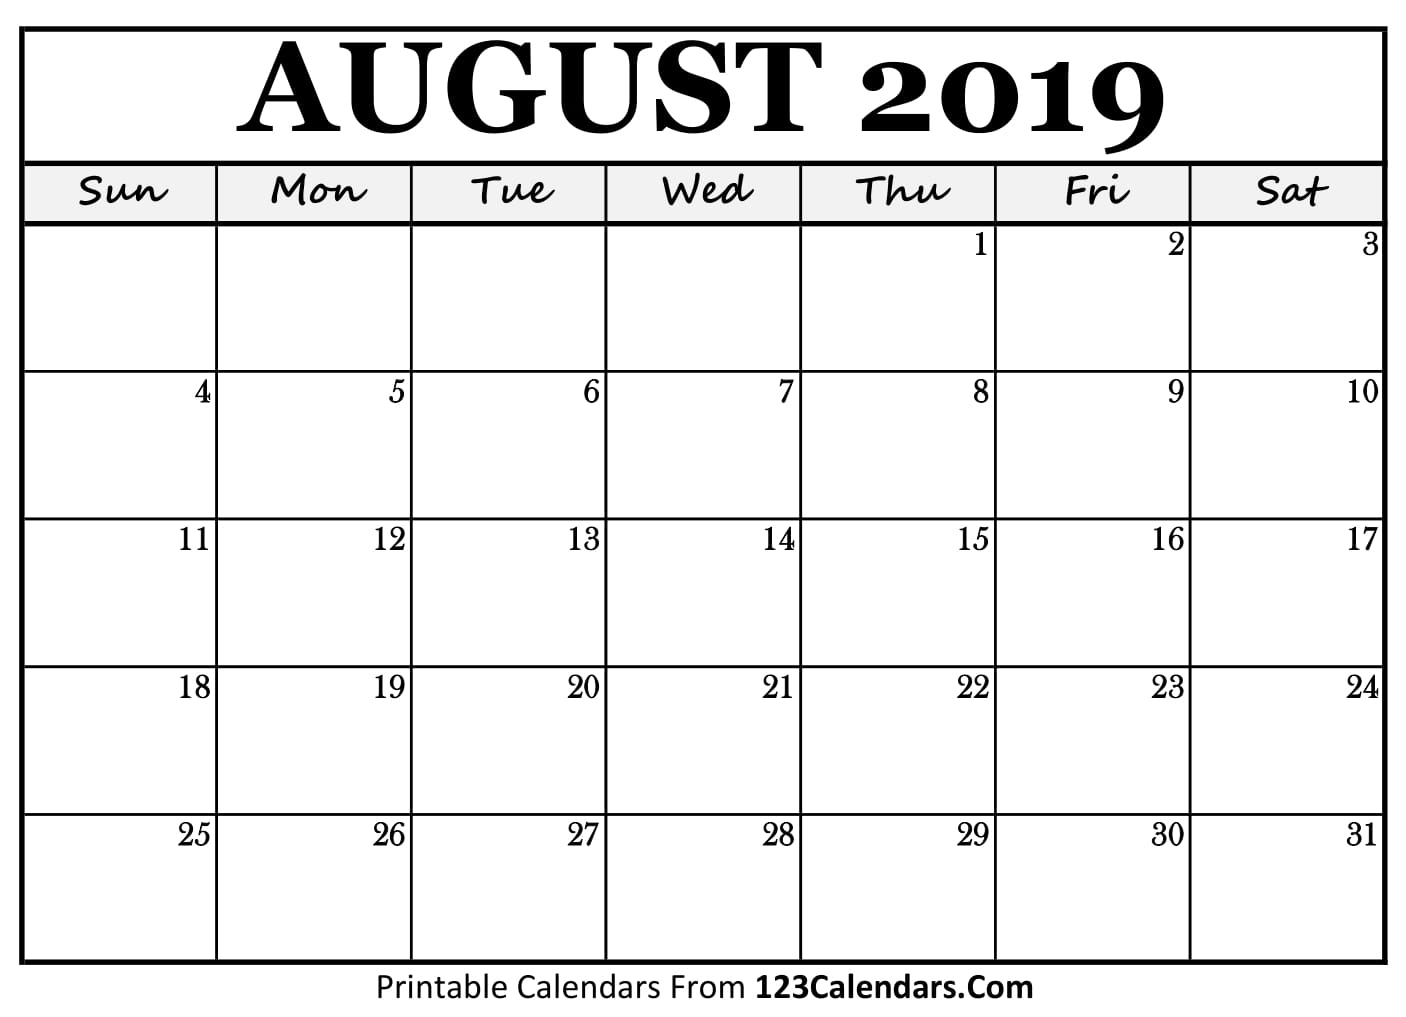 August 2019 Printable Calendar | 123Calendars throughout Blank Calendar To Write On August